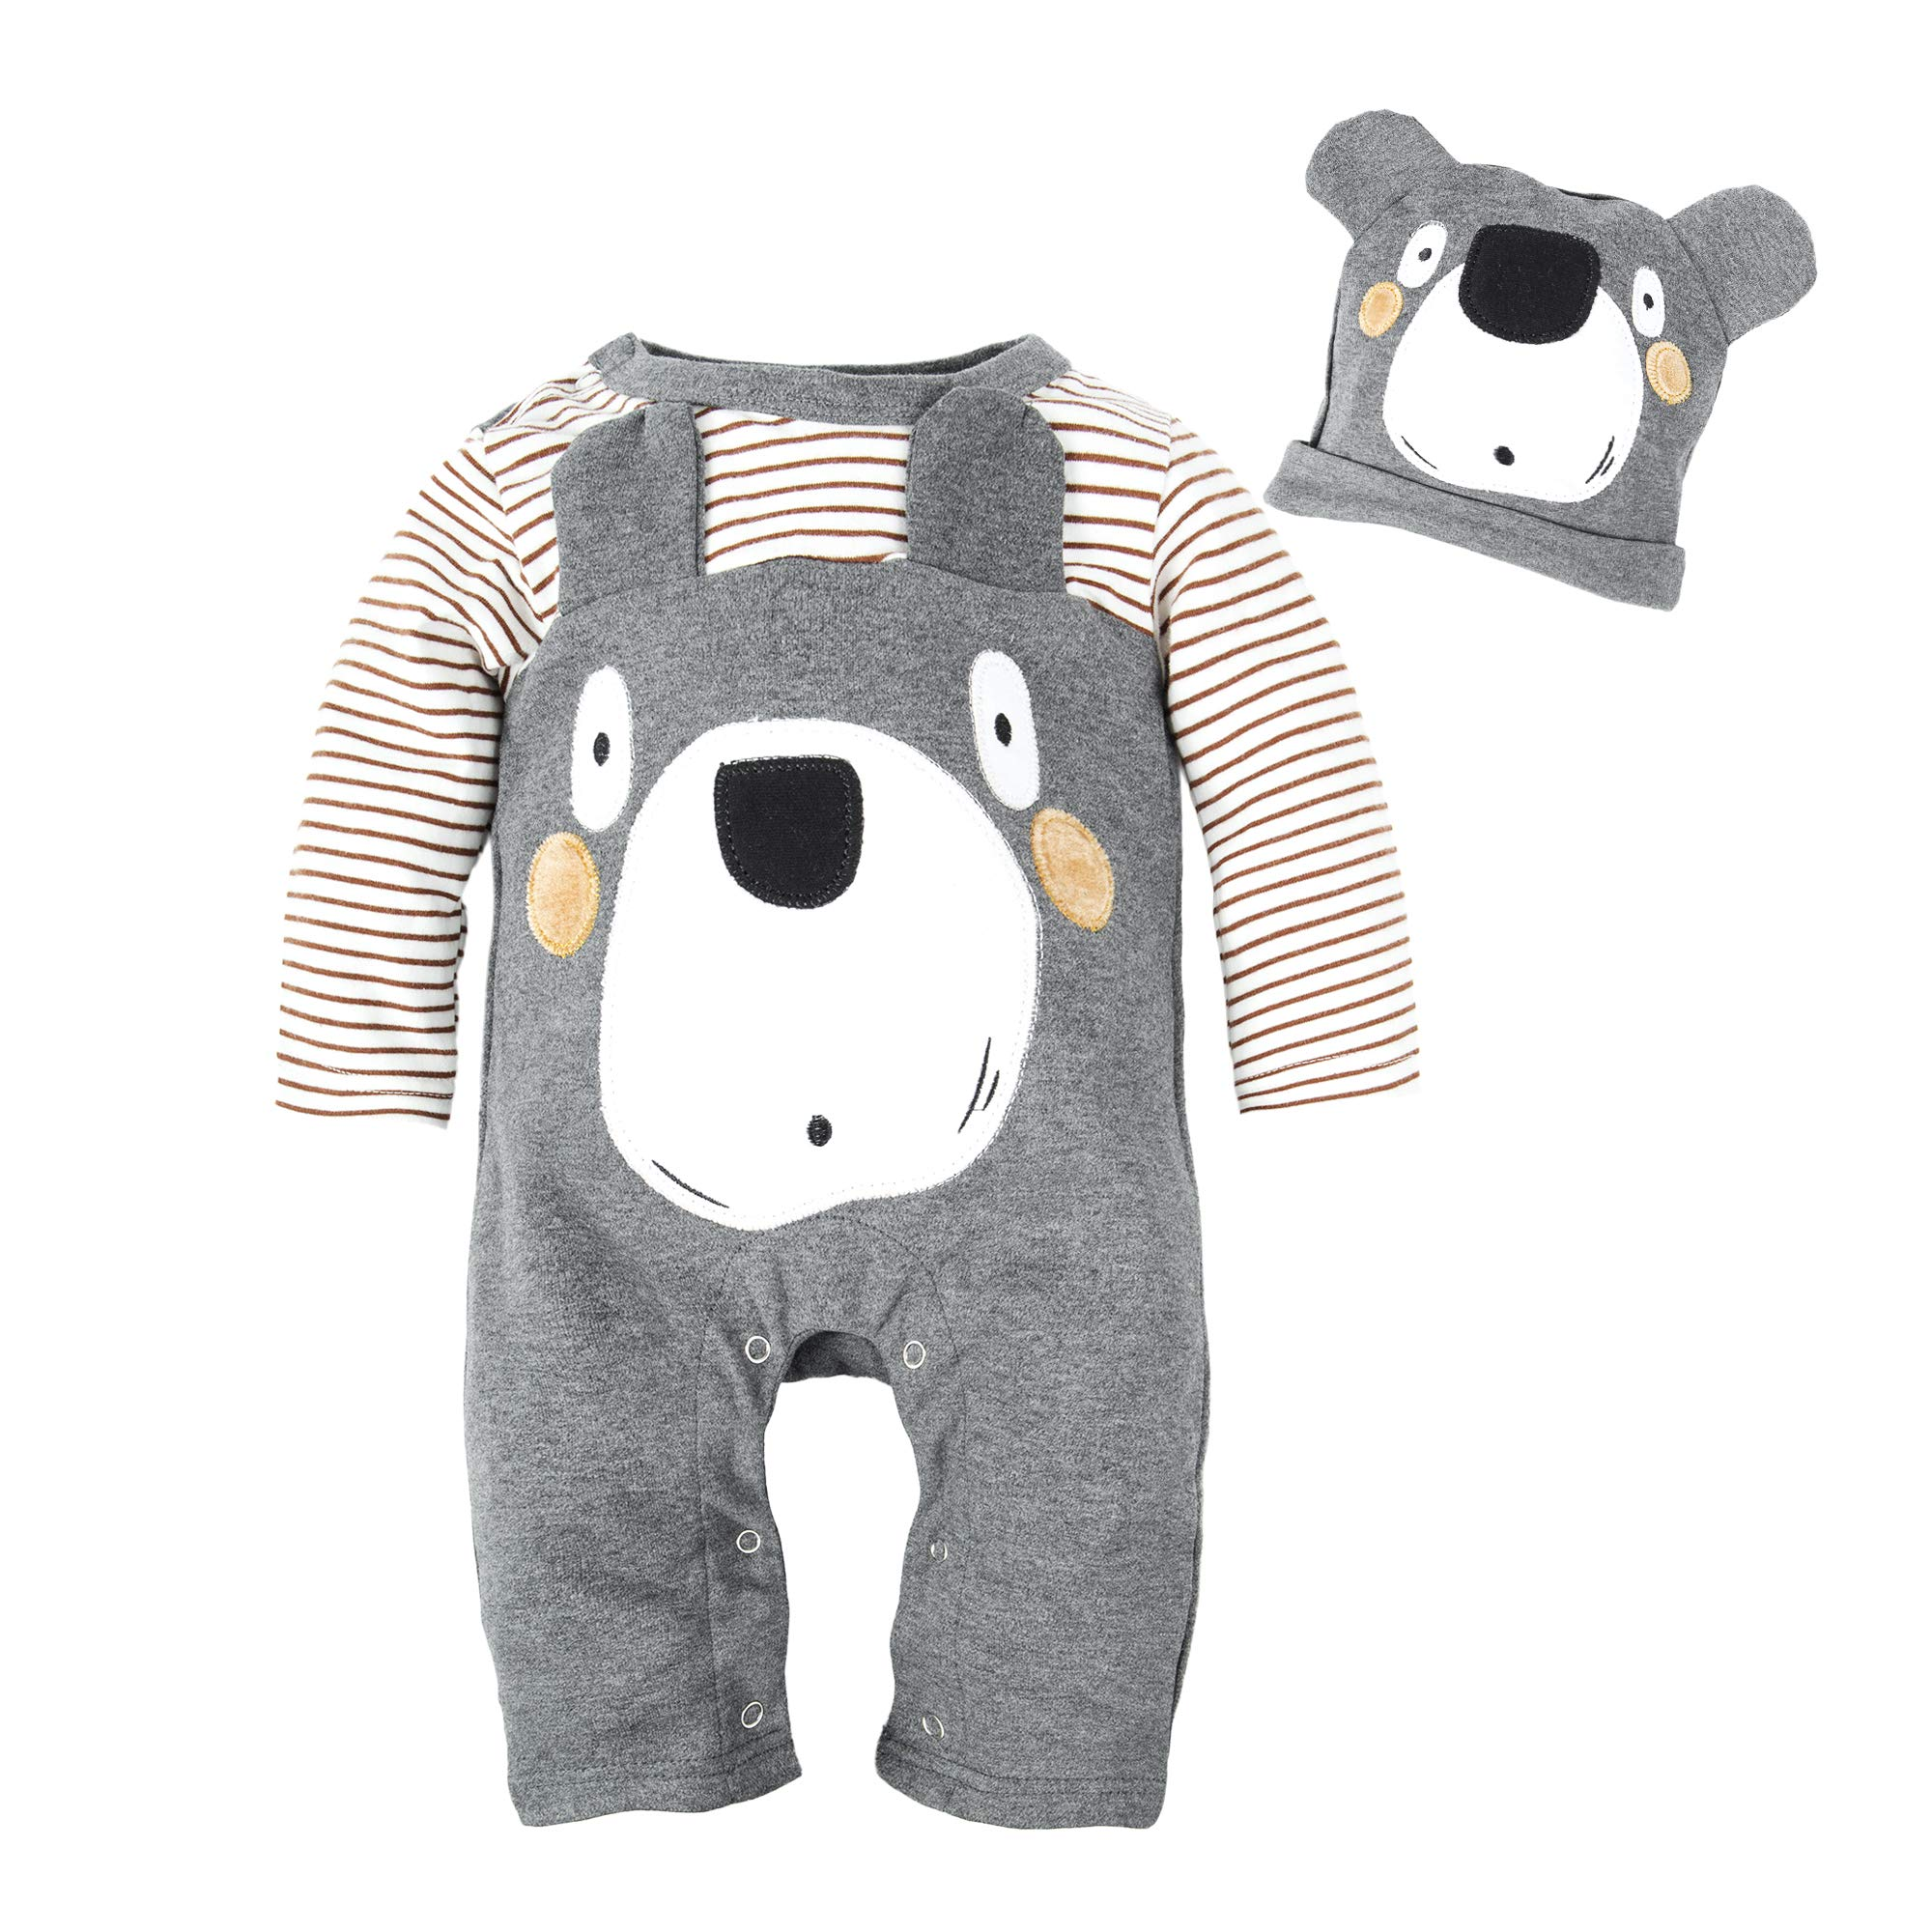 BIG ELEPHANT Baby Boys' 1 Piece Cute Animal Long Sleeve Romper Jumpsuit with Hat